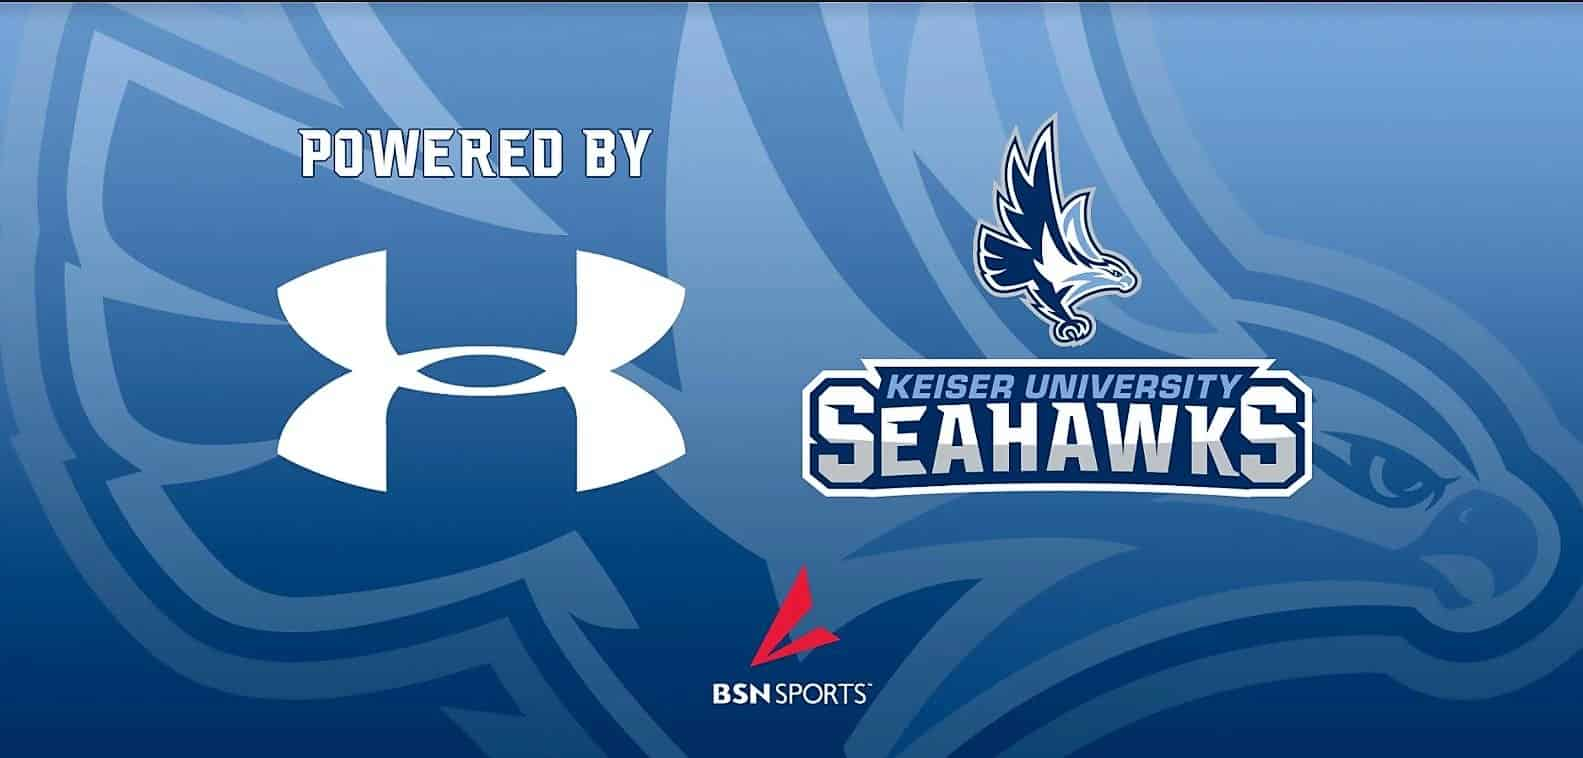 Keiser University Athletics Enters Partnership With Under Armour and BSN Sports